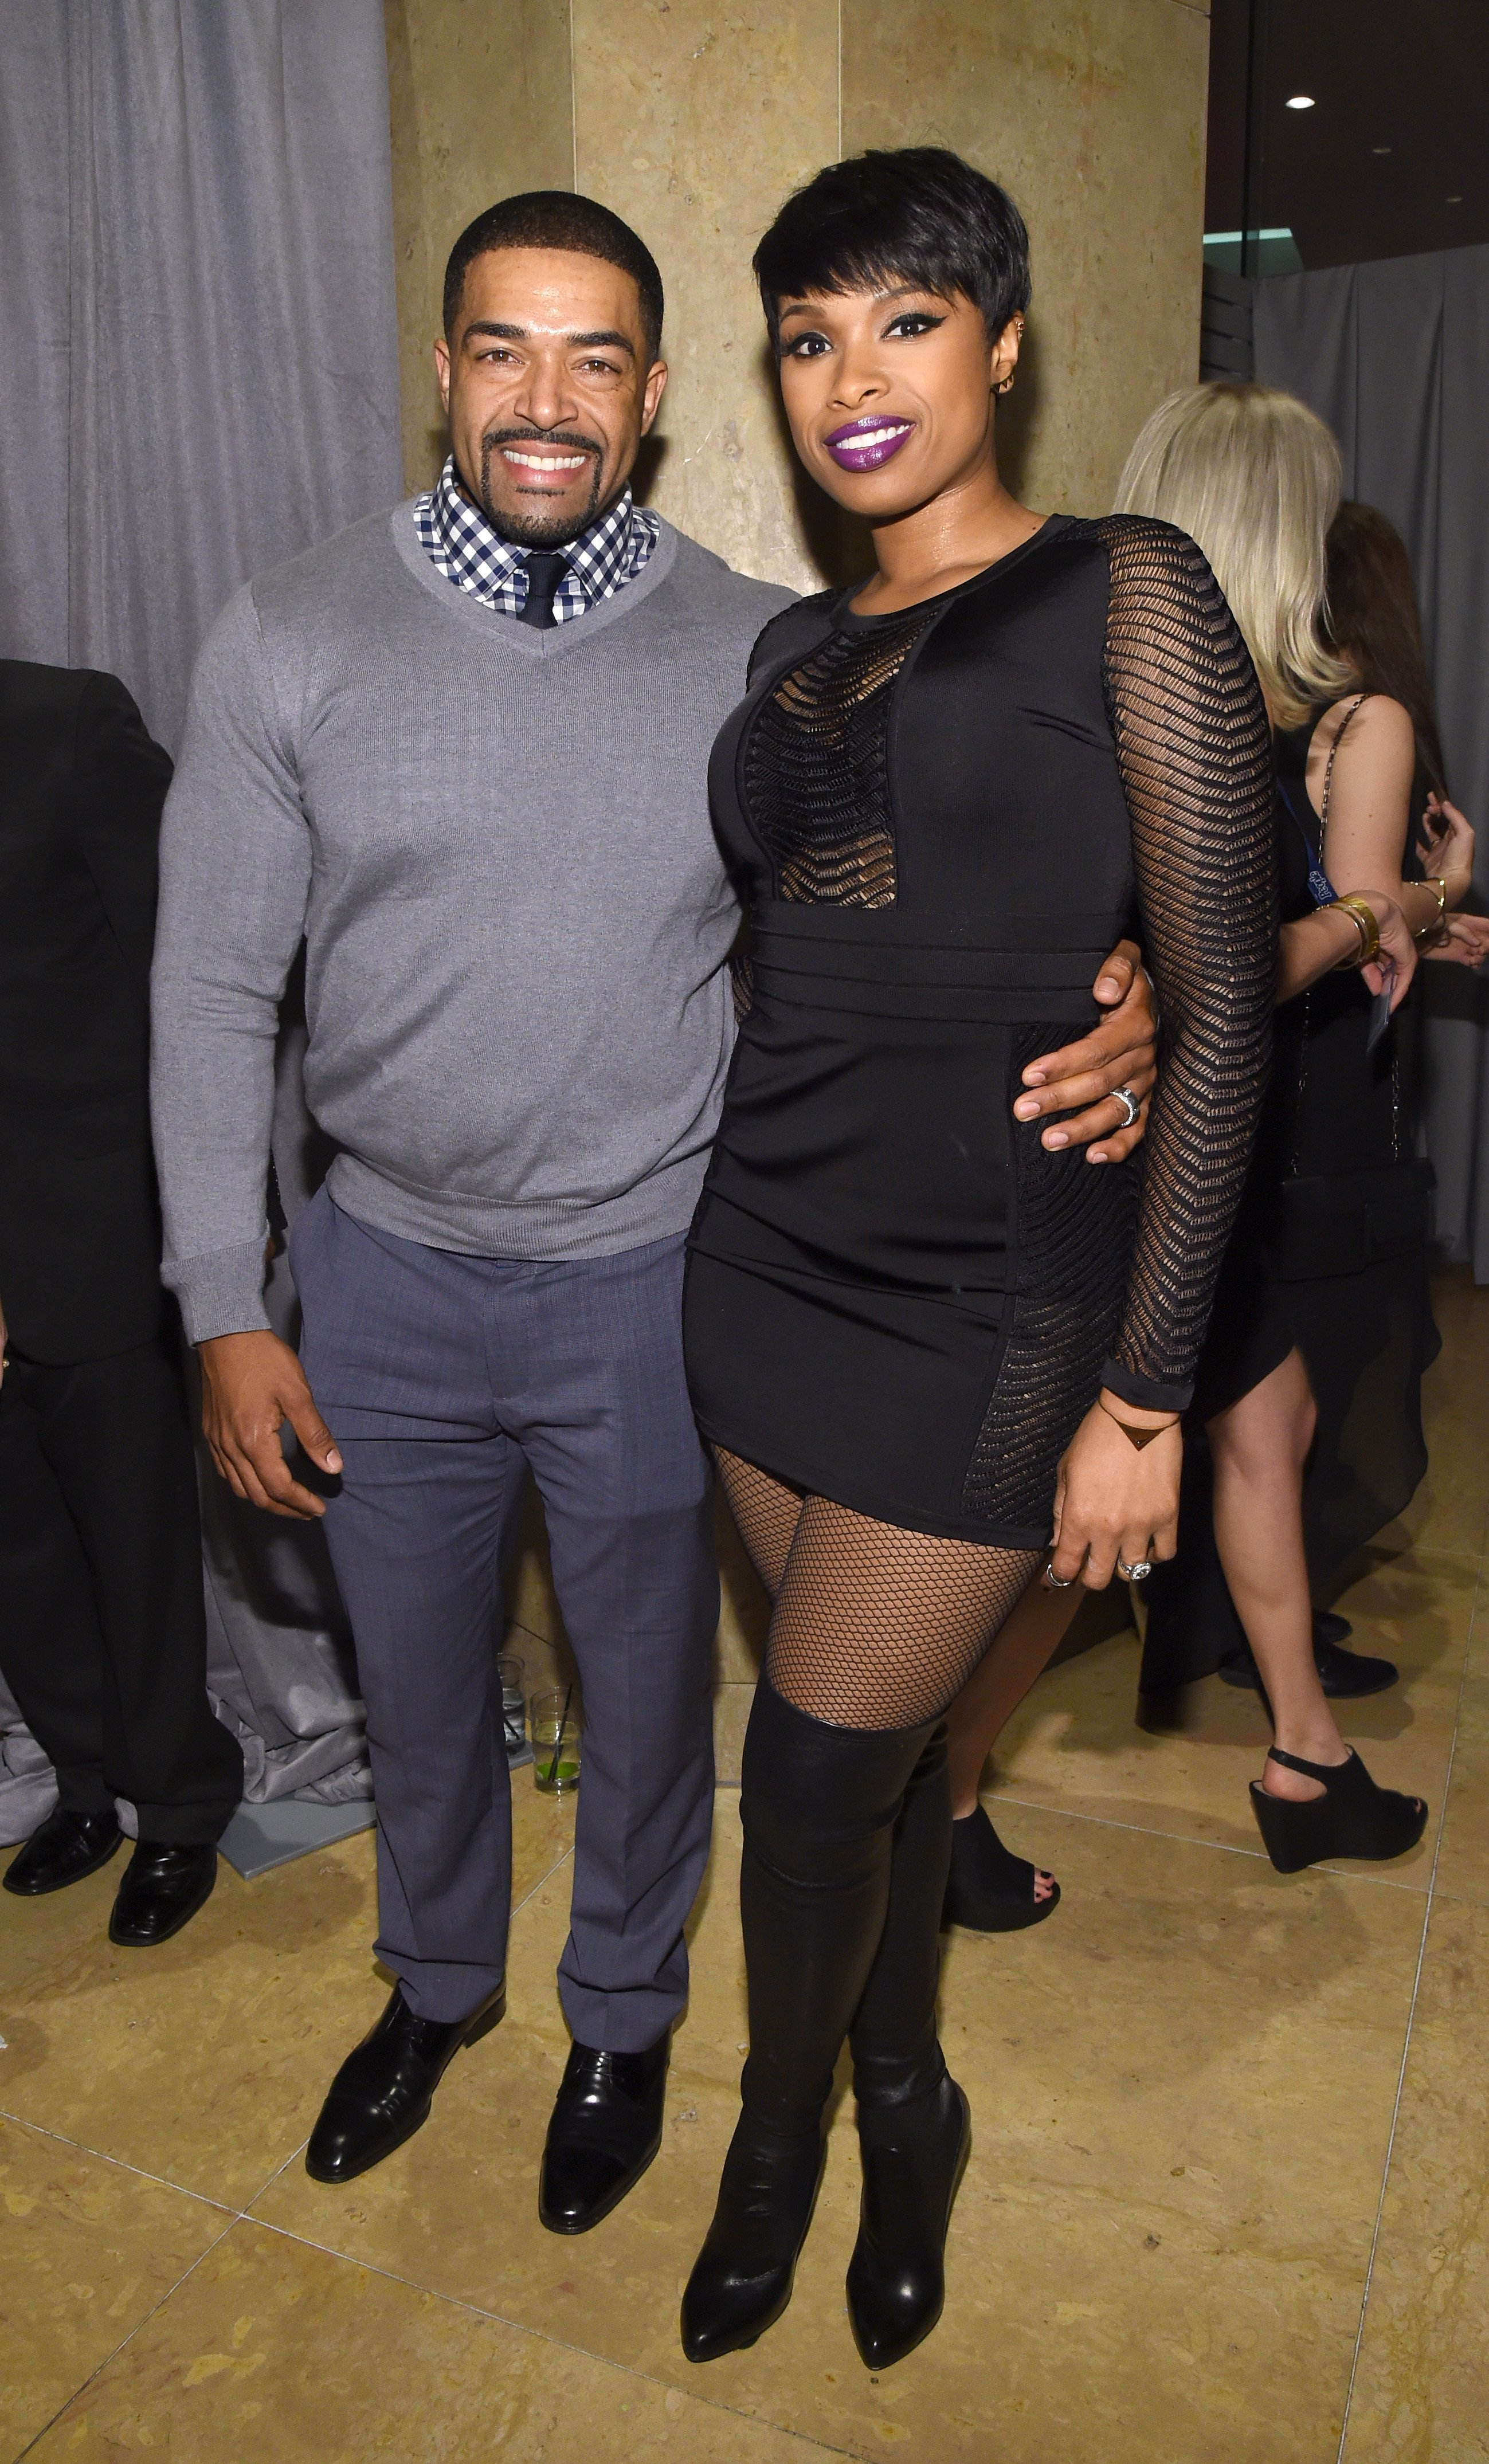 Jennifer Hudson with her ex-fiance, David Otunga at a Pre-Grammy Gala event in February 2015. | Photo: Getty Images